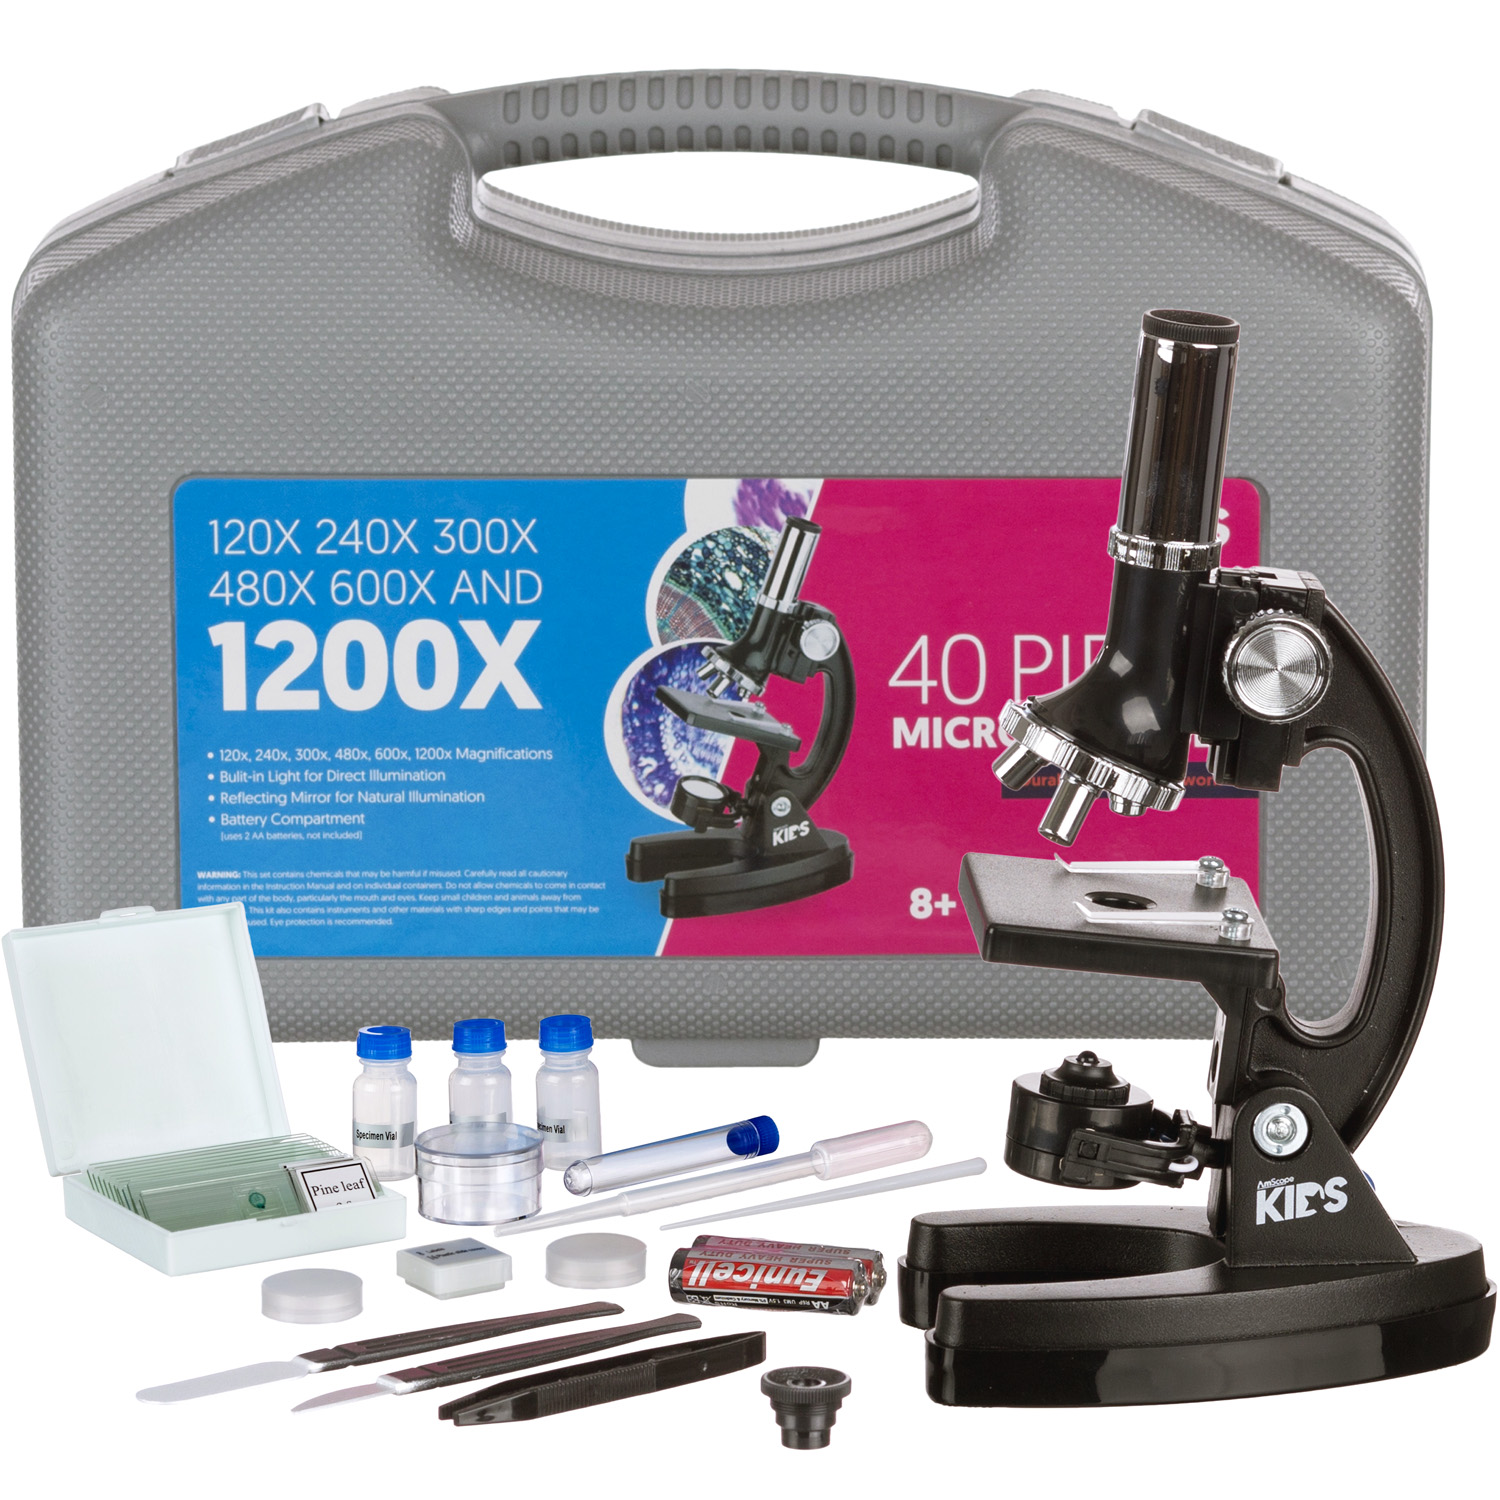 AMSCOPE-KIDS 120X-240X-300X-480X-600X-1200X Metal Arm Educational Biological Kids Microscope Kit by United Scope